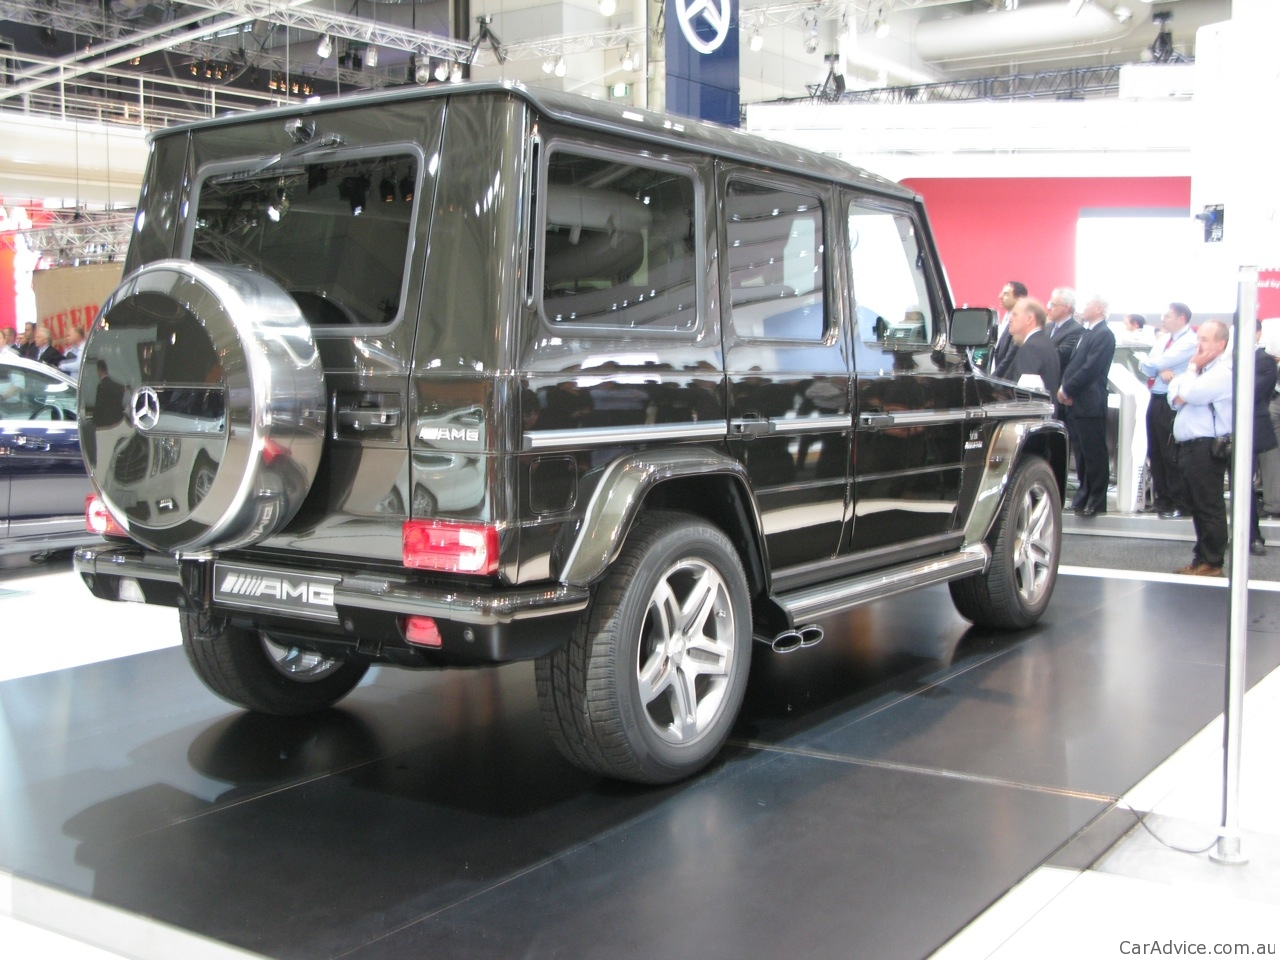 2019 Mercedes Benz G55 AMG photo - 2